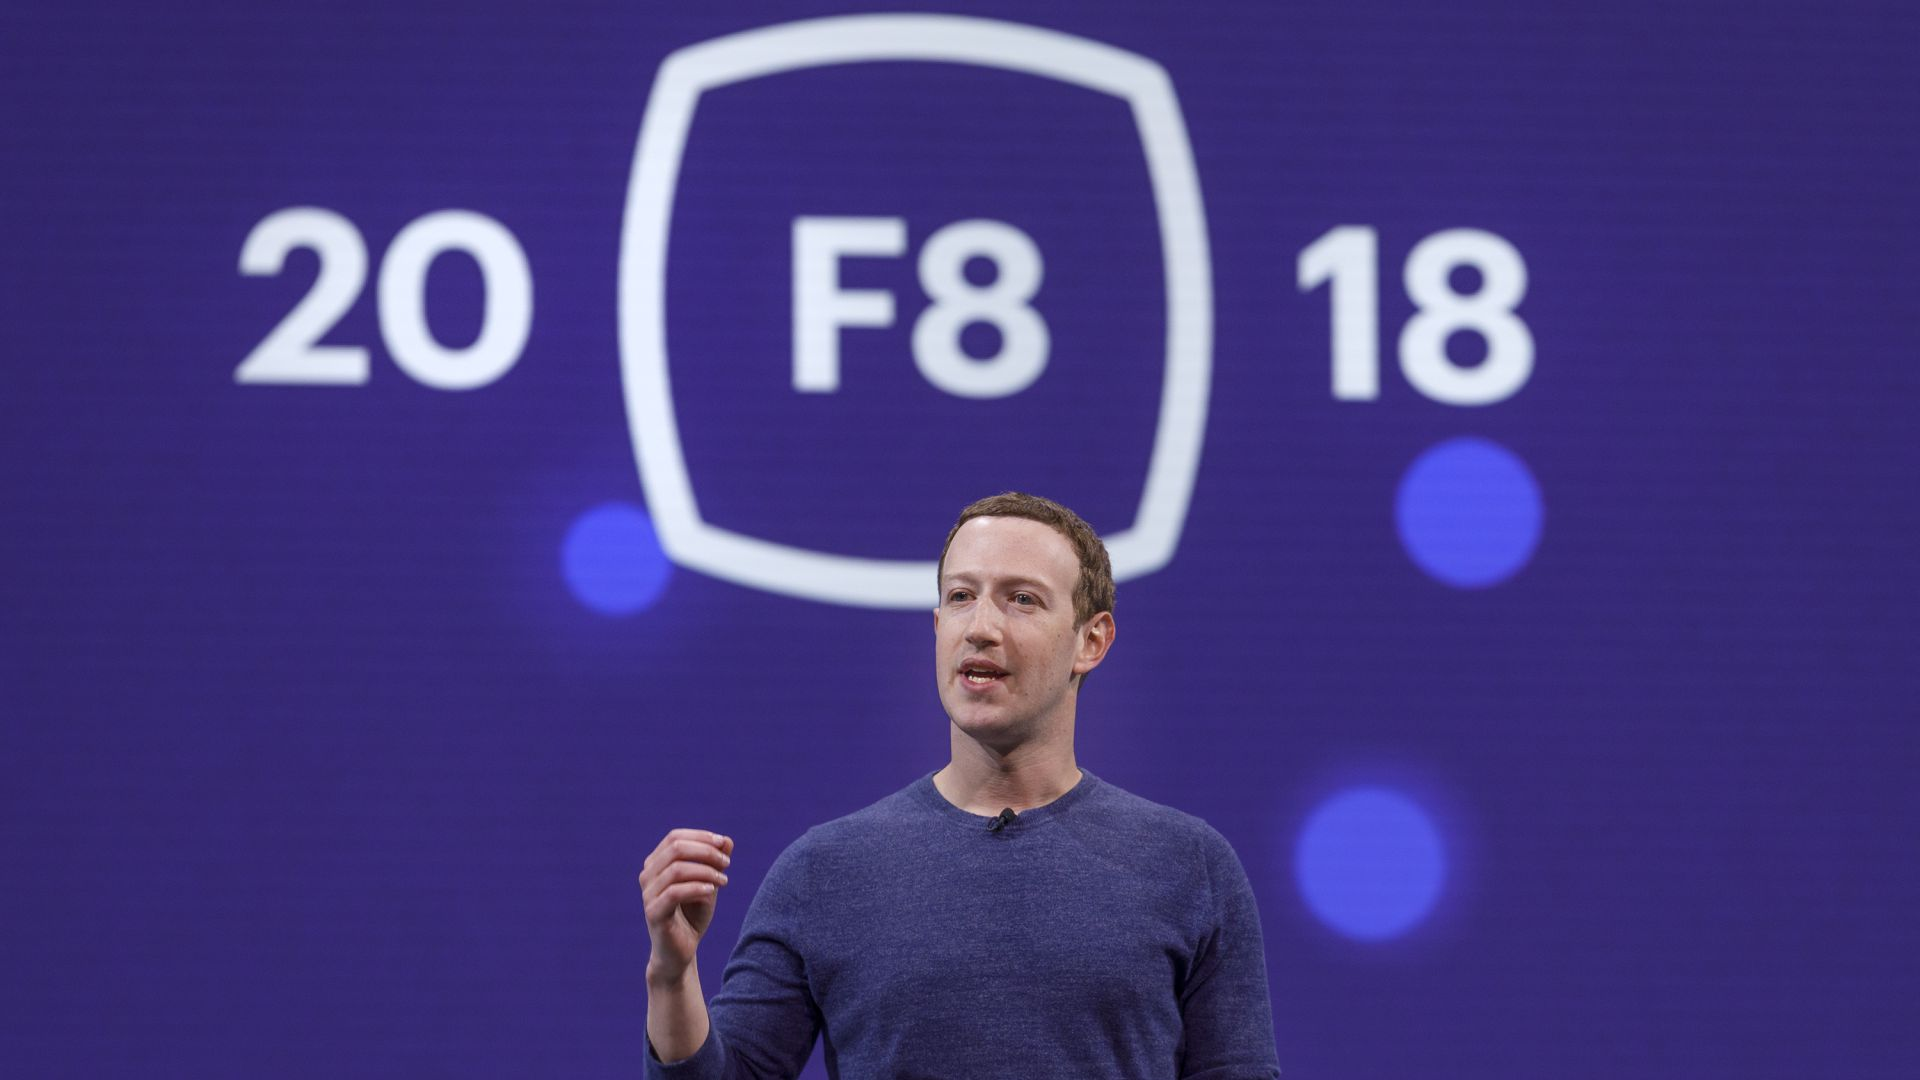 Facebook CEO Mark Zuckerberg at F8 2018.